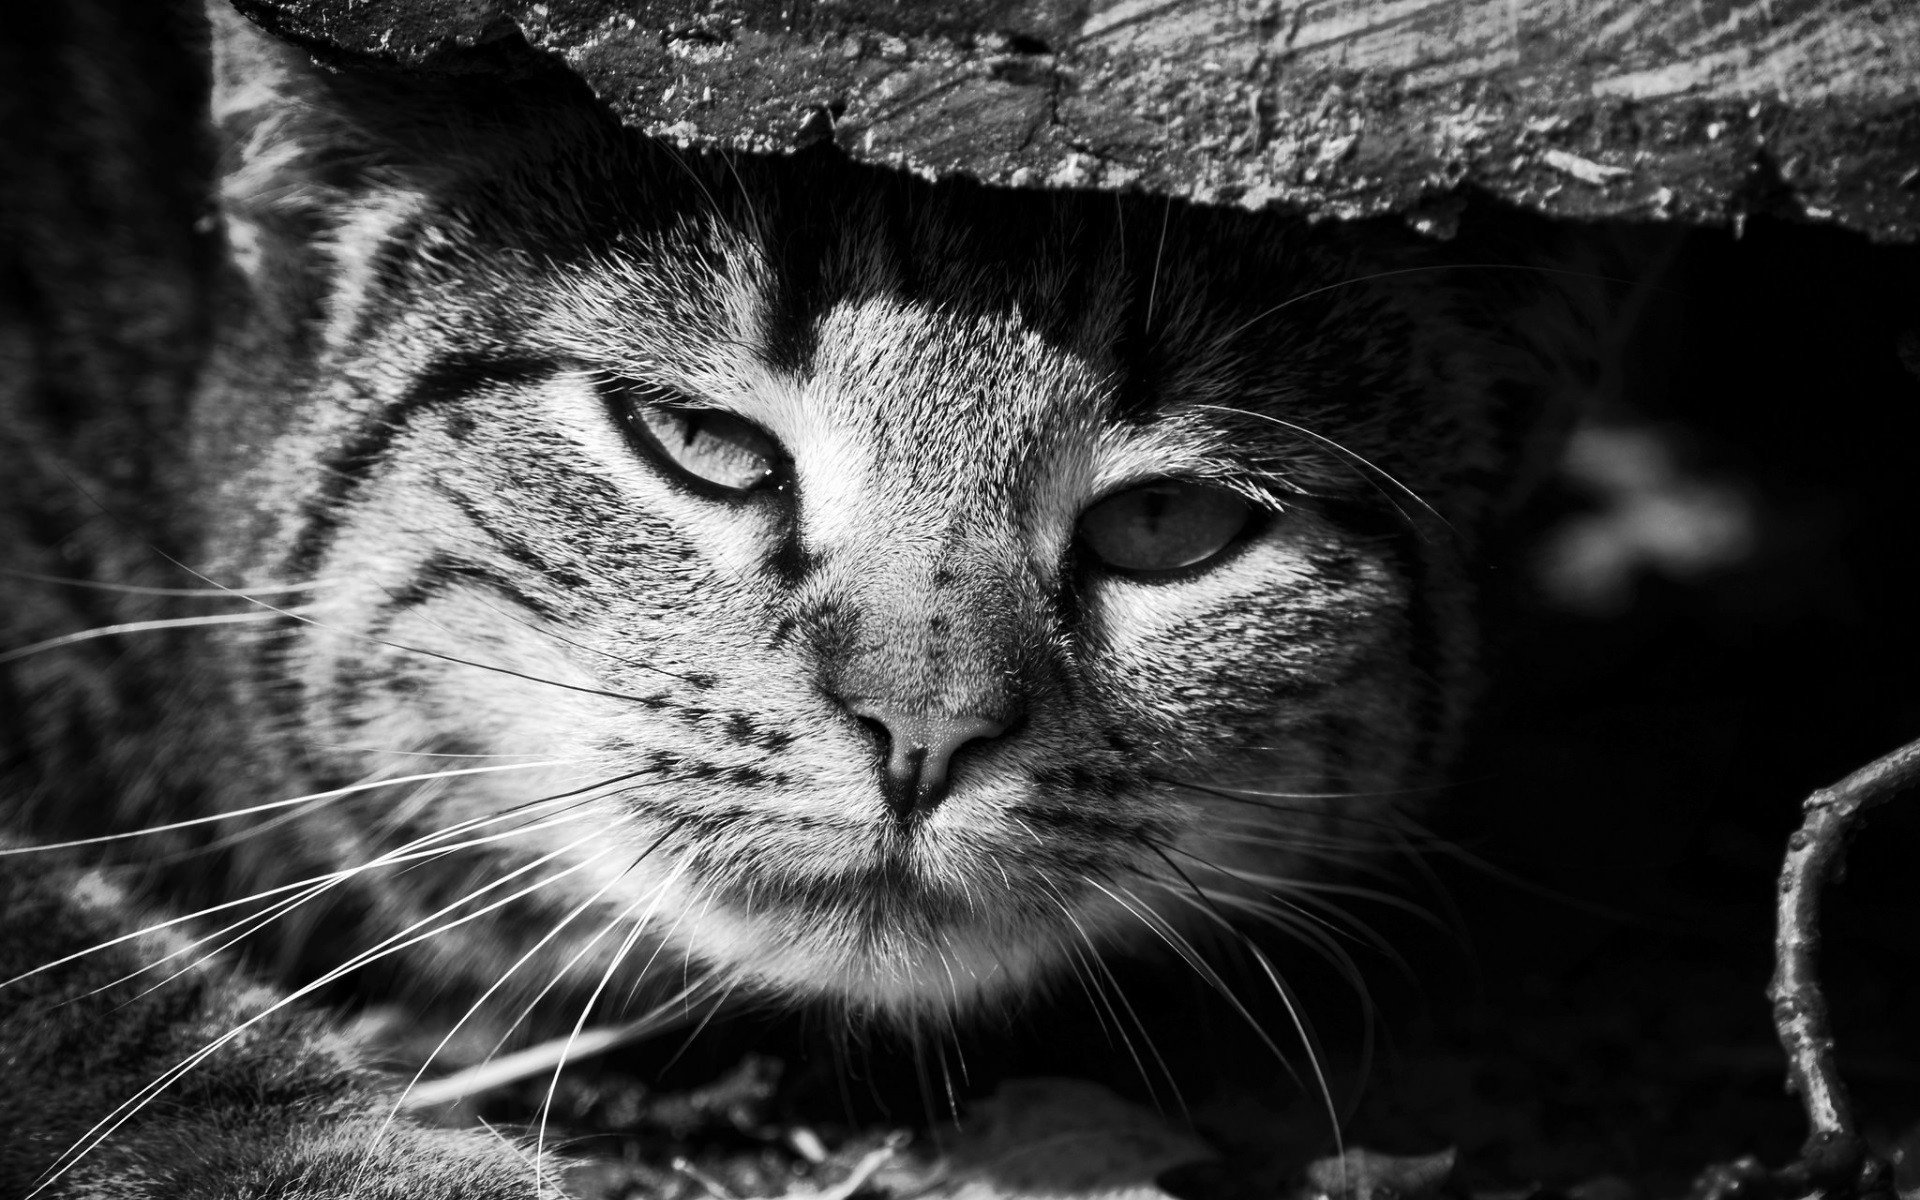 Animals 68 Hd Wallpapers Hd Wallpapers: Monochrome, Cat, Animals HD Wallpapers / Desktop And